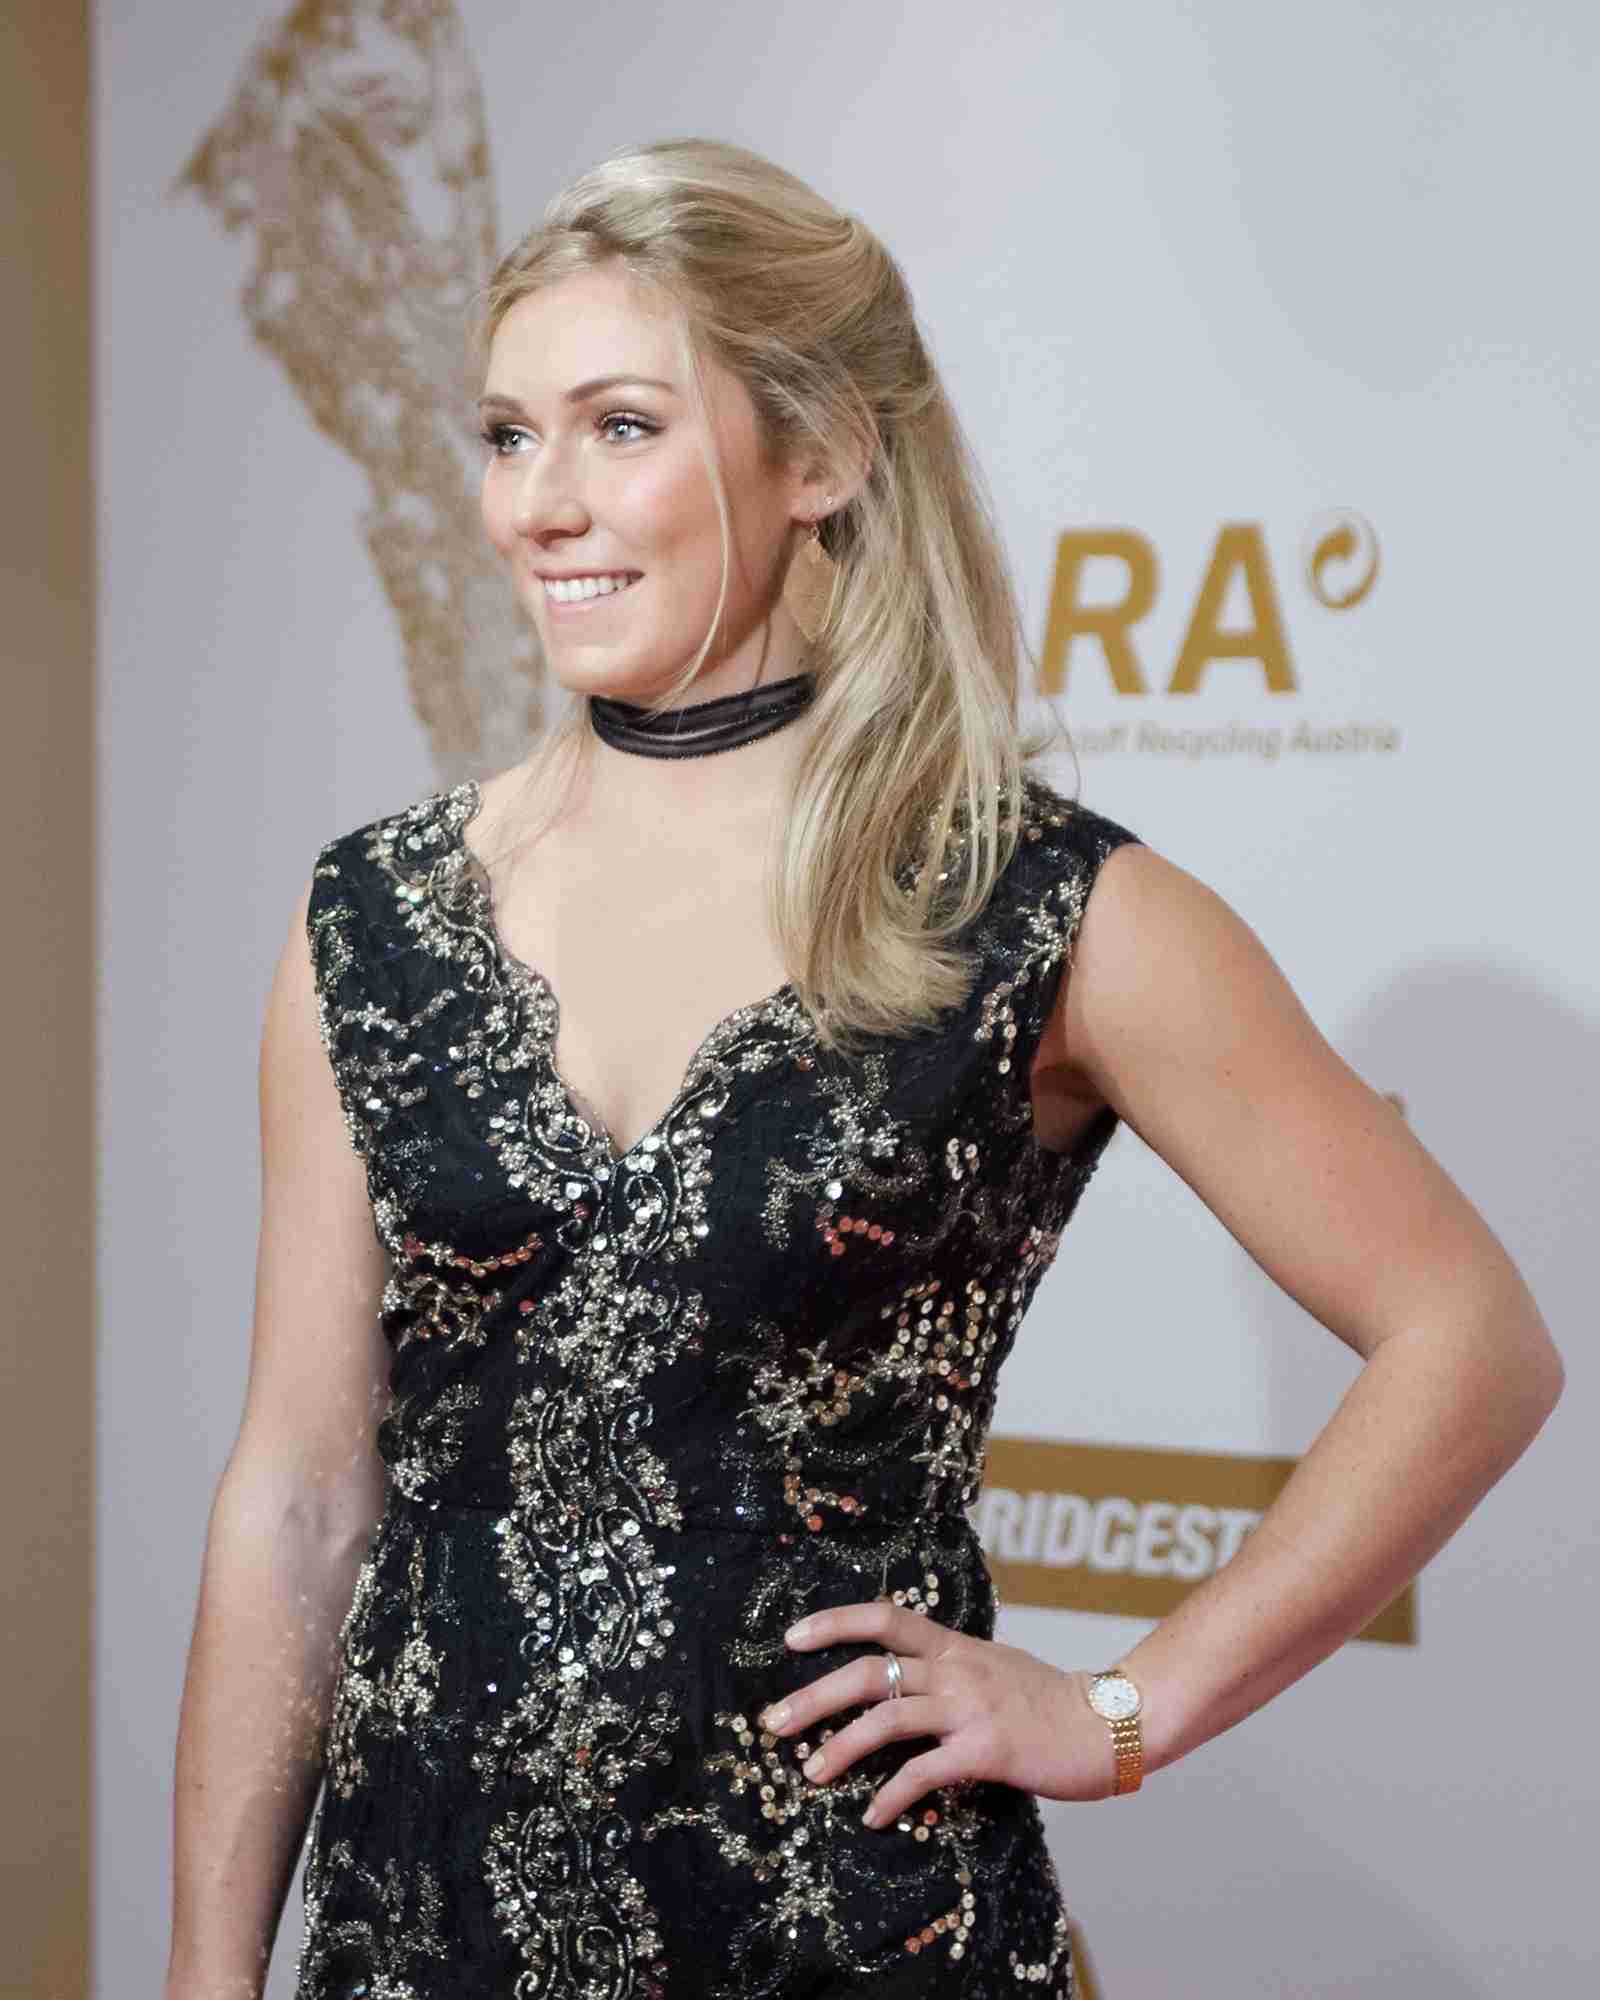 Photo:  Mikaela Shiffrin 01 2016